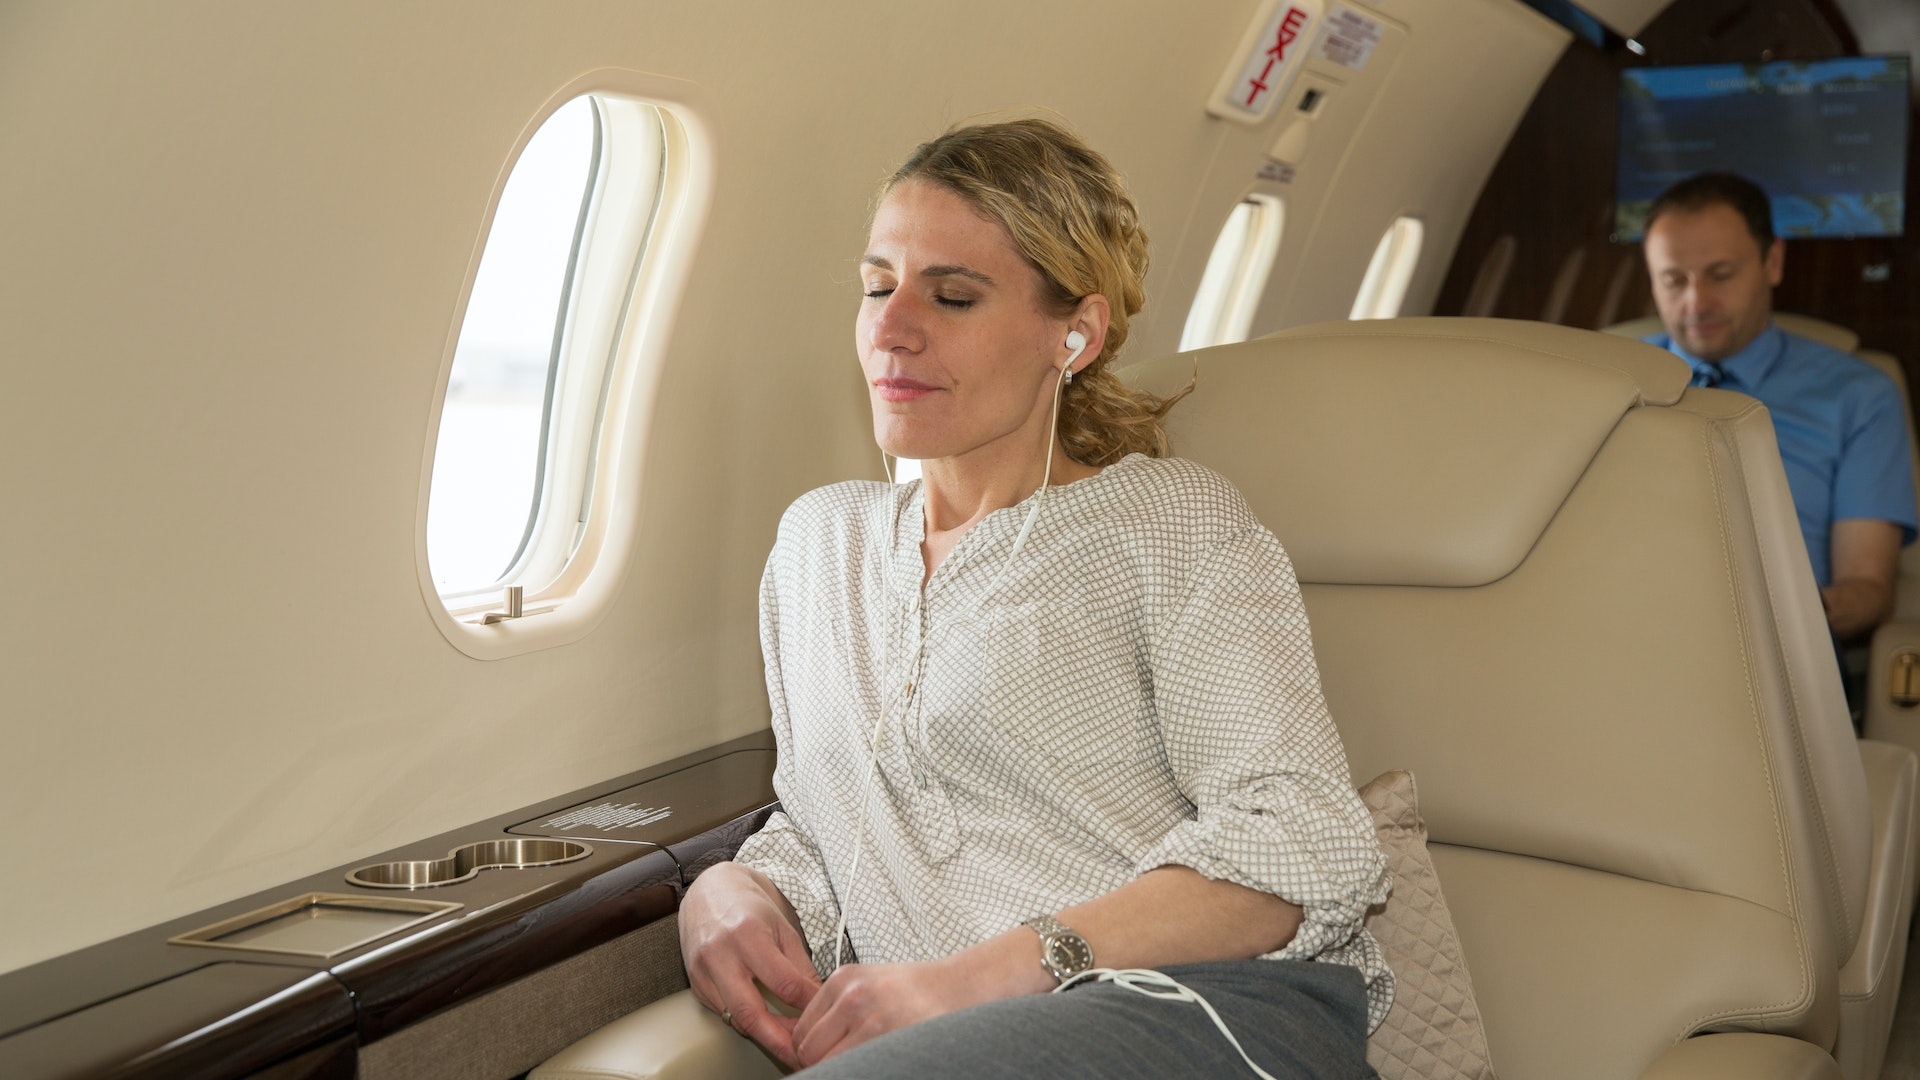 Reclining on a jet